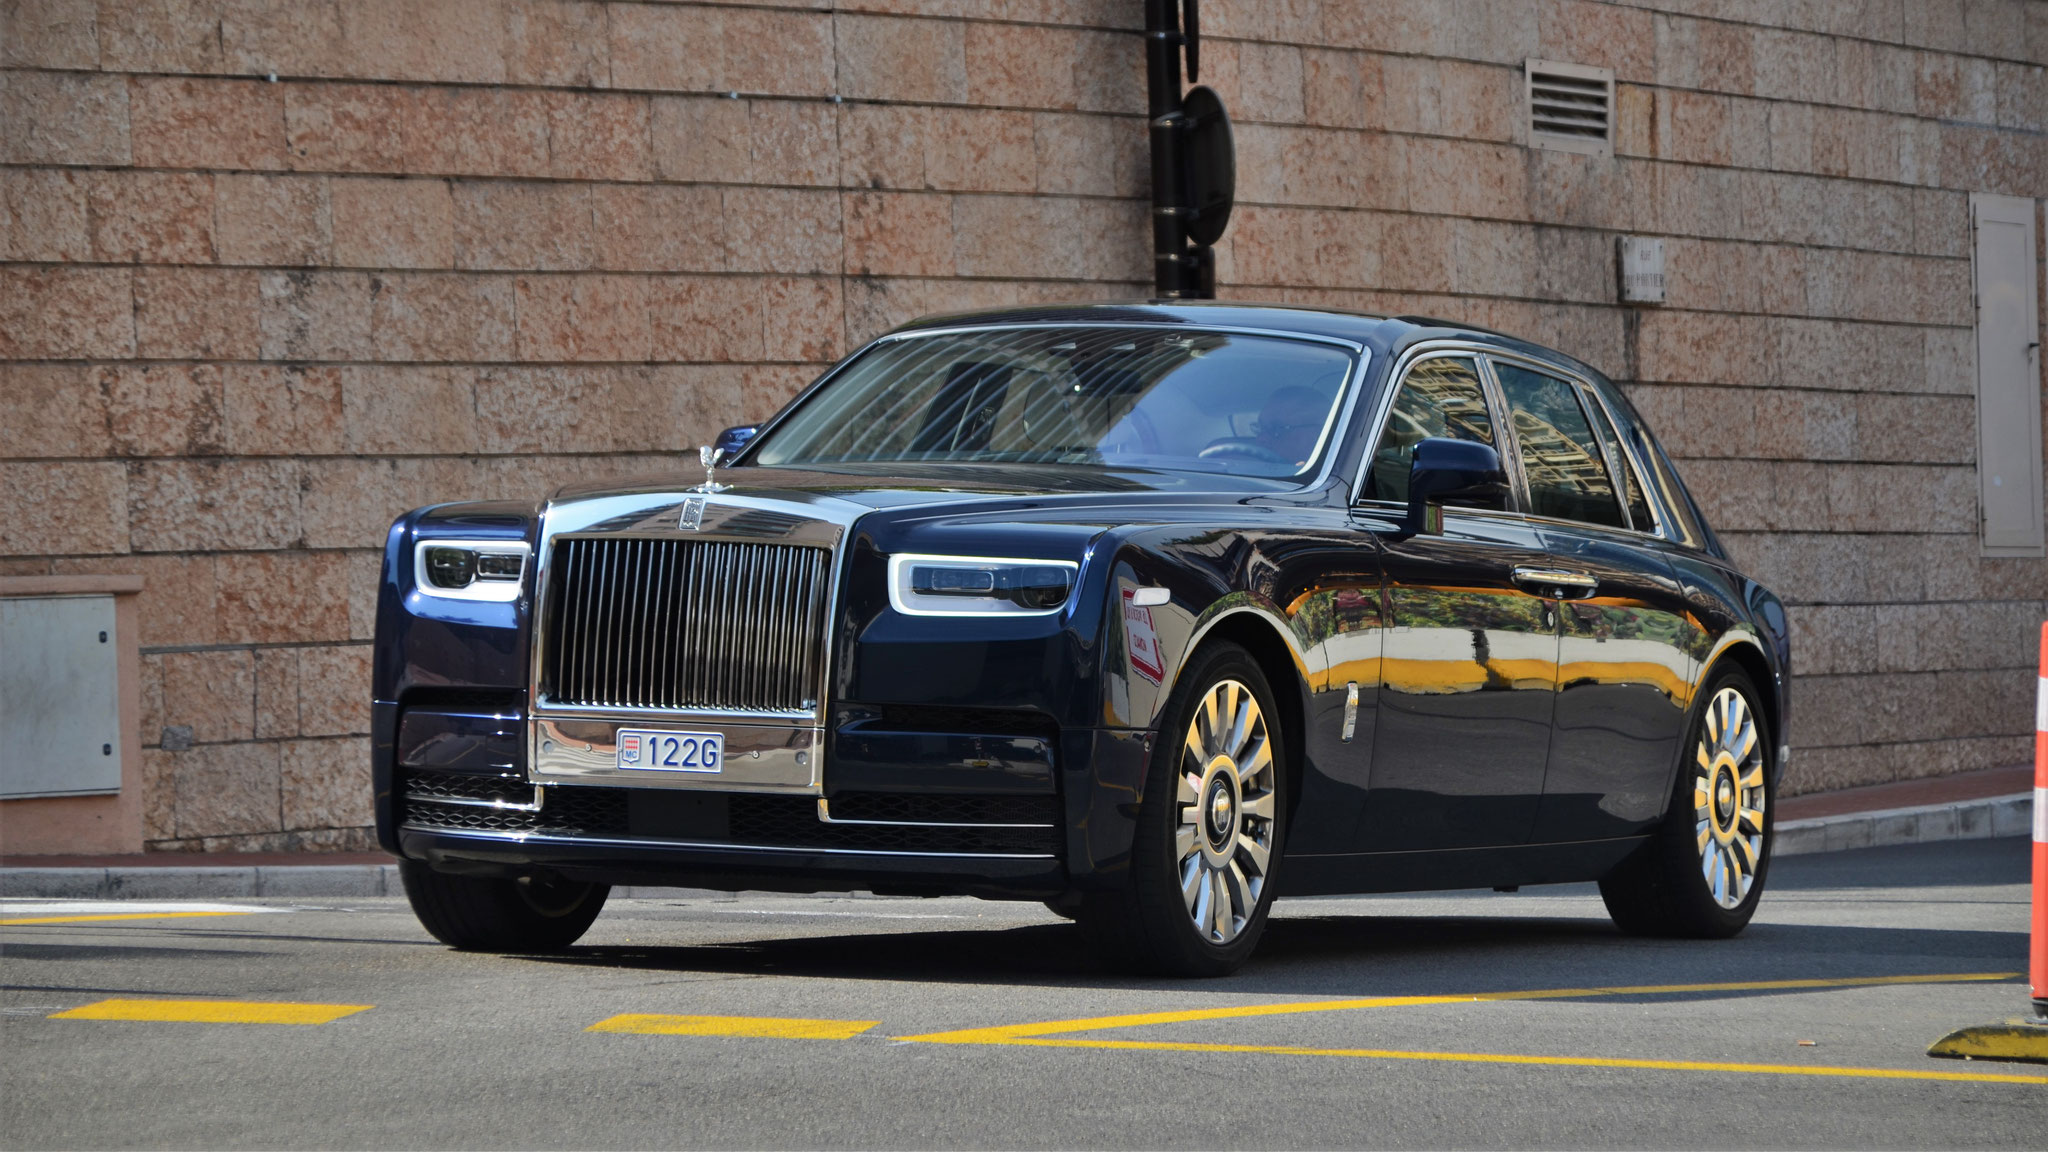 Rolls Royce Phantom - 122G (MC)